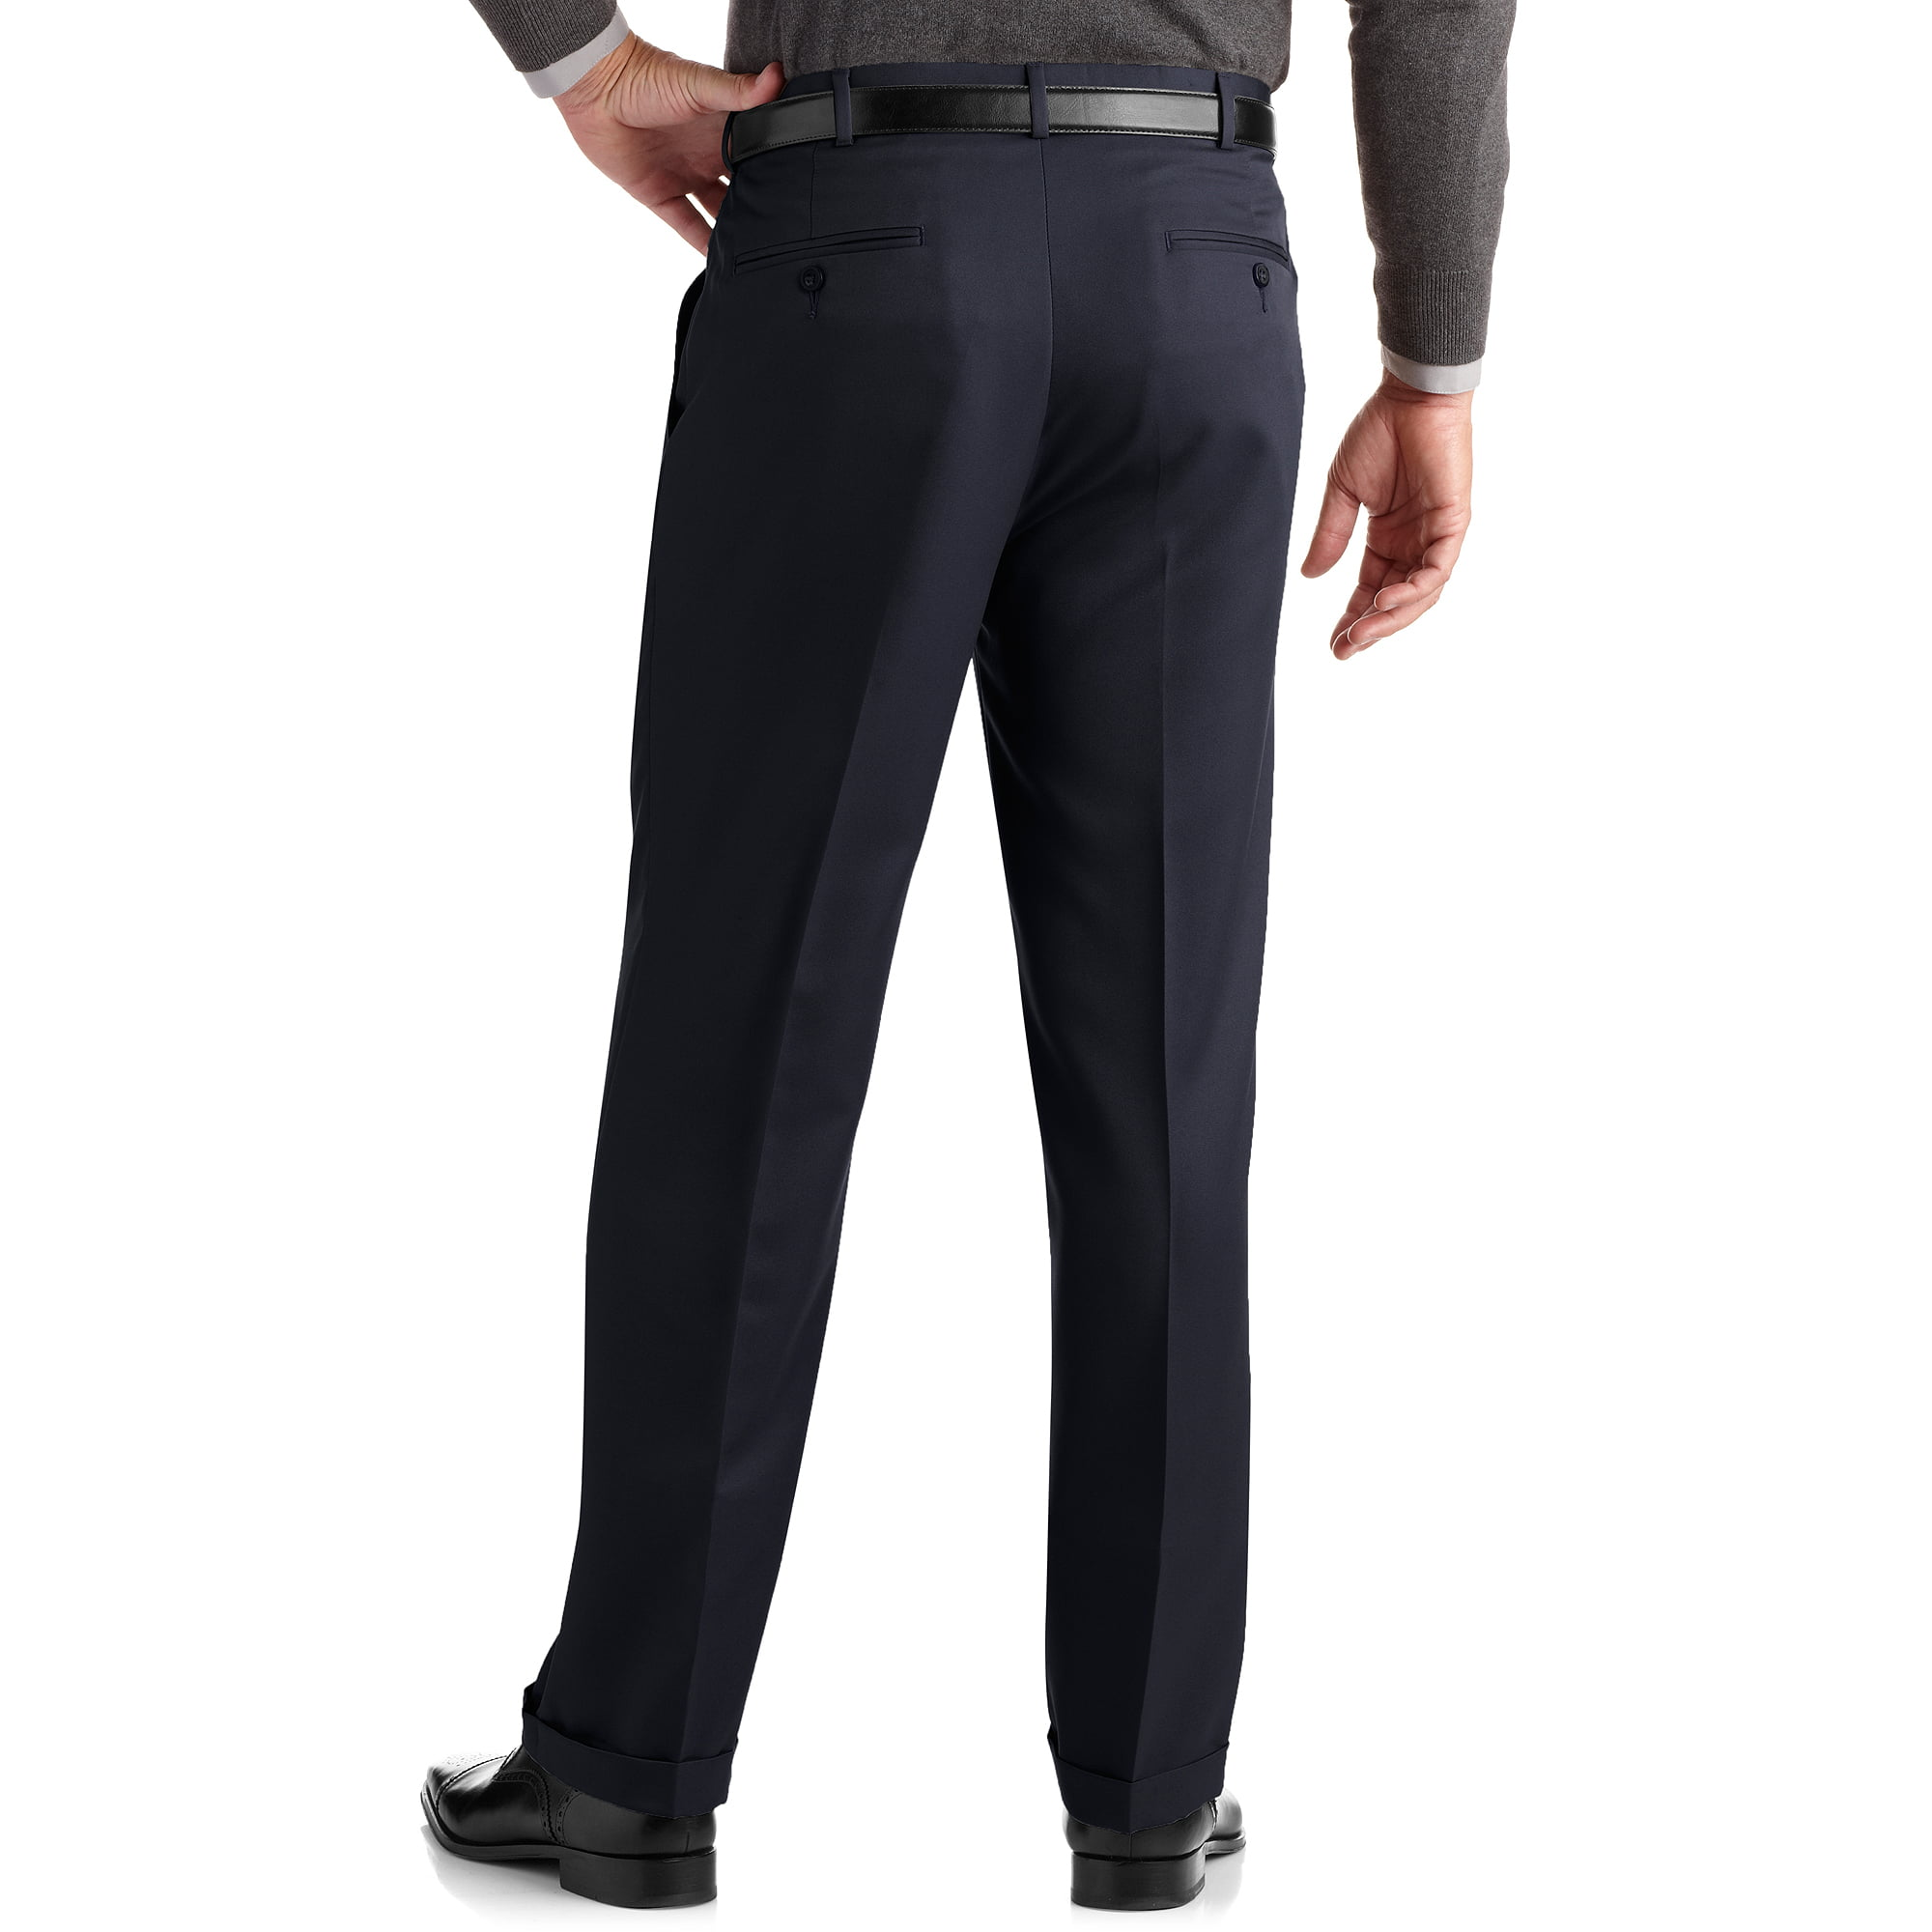 George Men's Half Elastic Twill Pants - Walmart.com